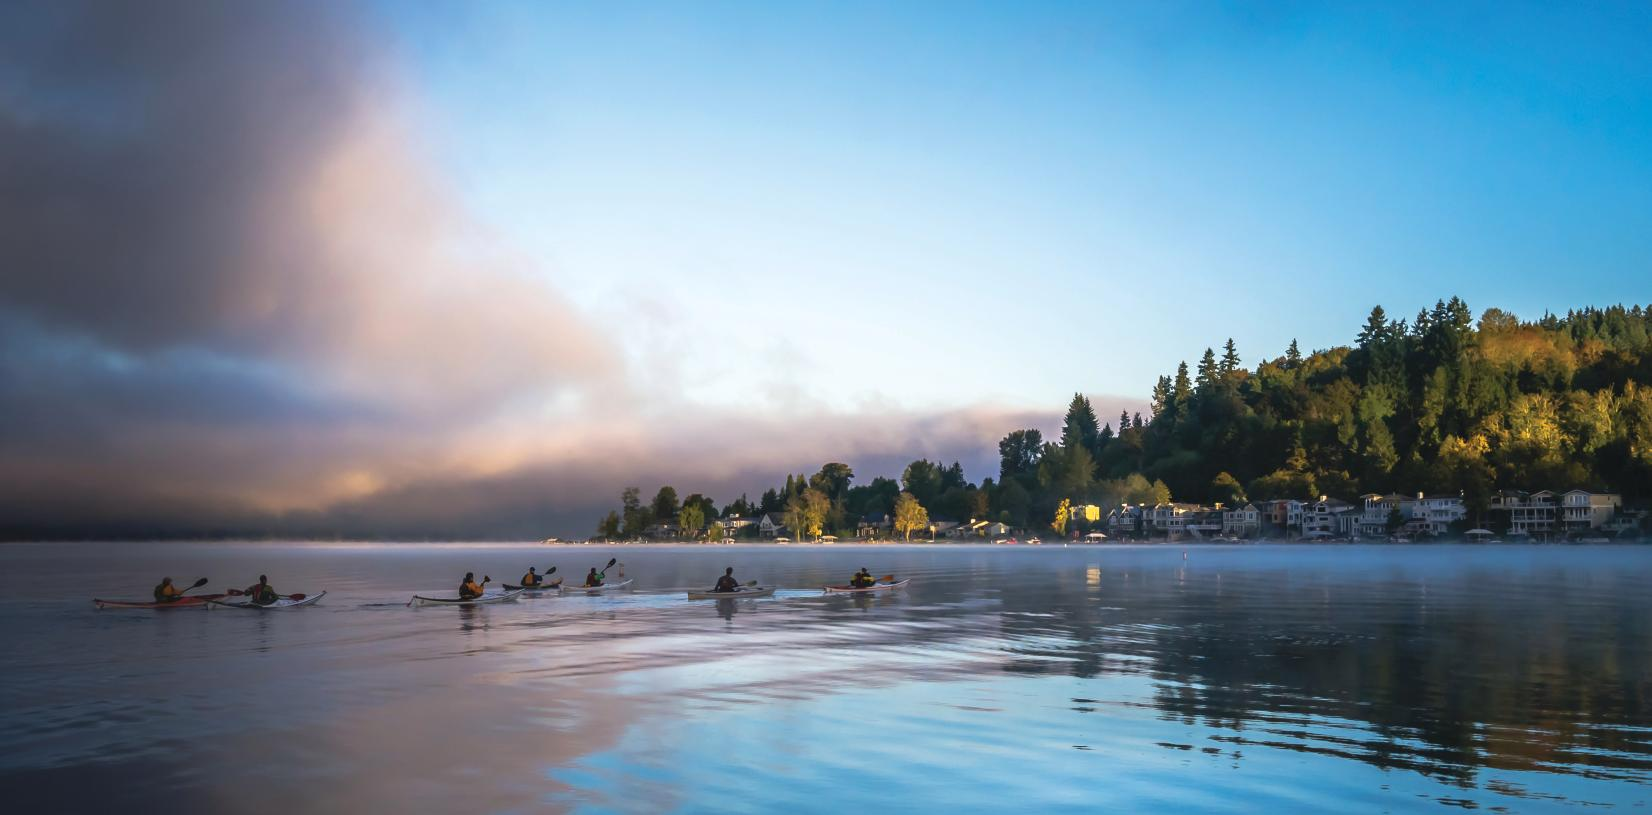 531-acre Lake Sammamish State Park is just minutes away with beach access and a boat launch for water activities